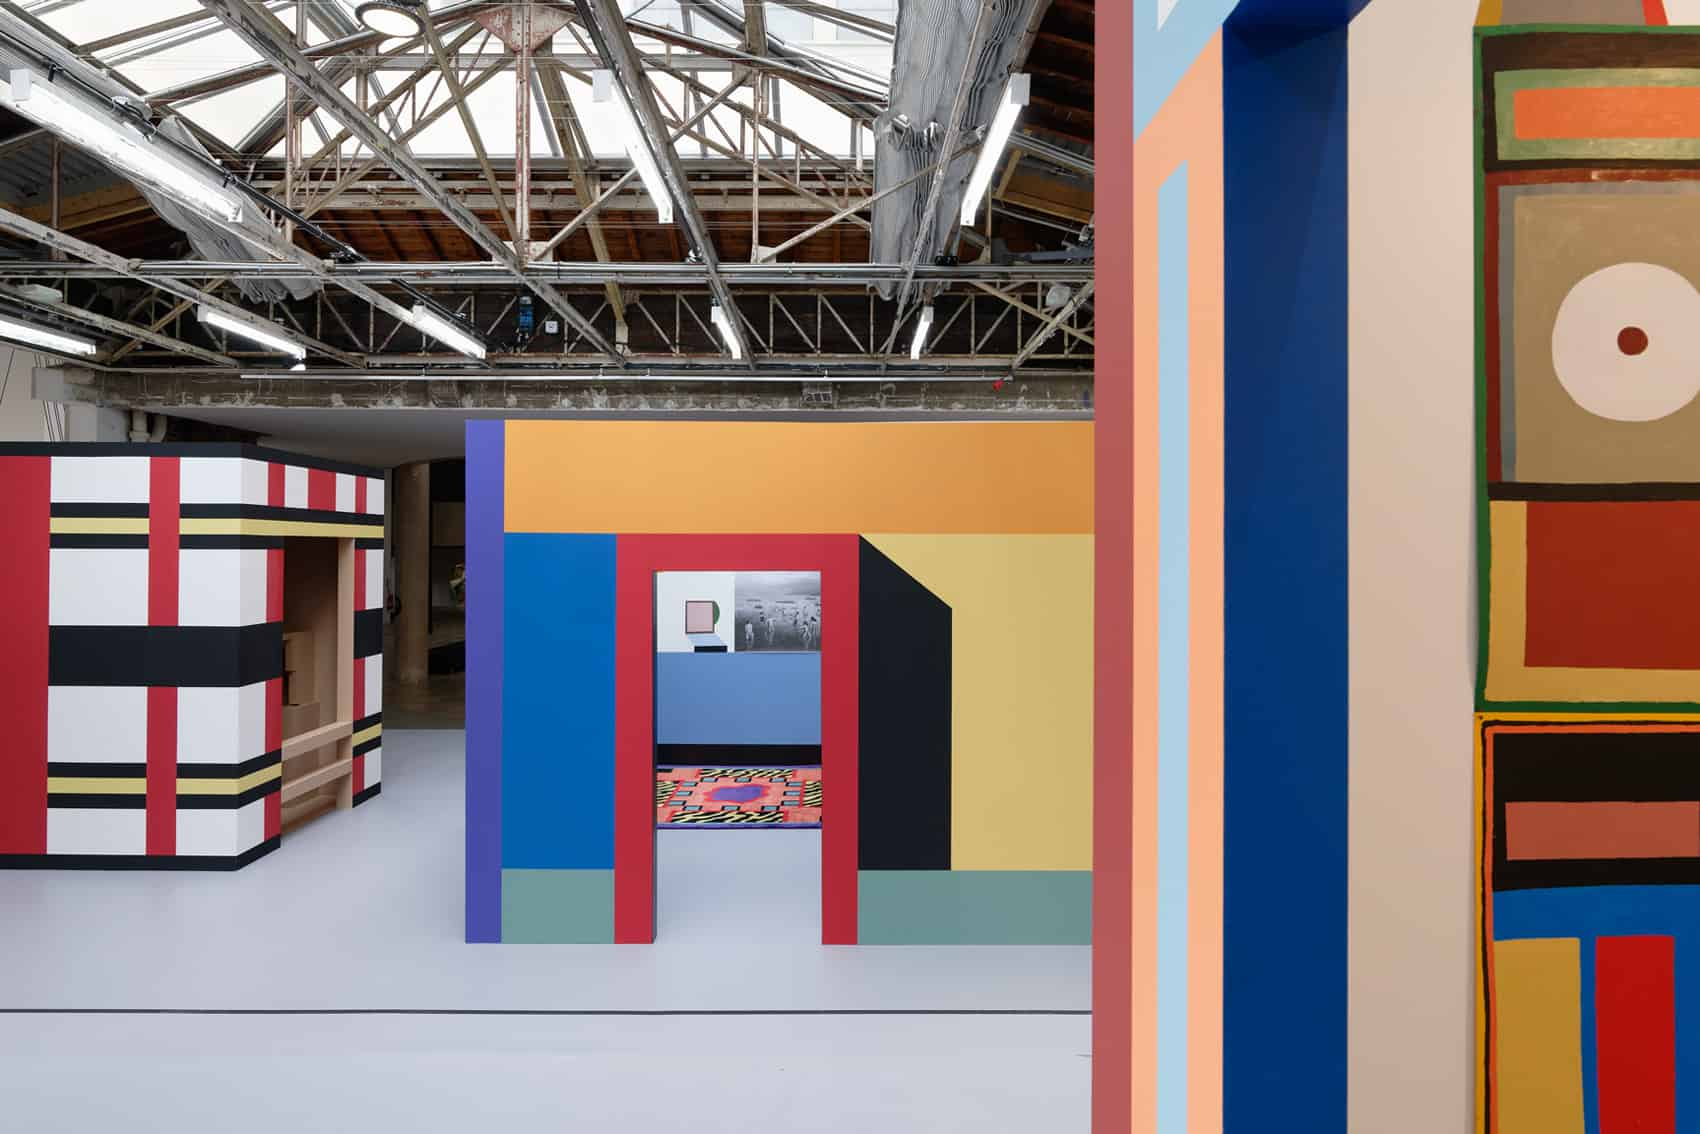 From the fist to the last plane: Nathalie Du Pasquier, Cabine n°3 : AS THE PLANE WAS REACHING CRUISING ALTITUDE 2, 2019, Installation, five painting, oil on paper, Cabine n°1 : CASA MIA, 1984-2019, Installation, mixed media, paintings, wool carpets, photocopies, Cabine n°2 : TROUVÉ DANS UNE GROTTE, 2019, Painted wood, Courtesy of the artist, Photo credit : Aurélien Mole